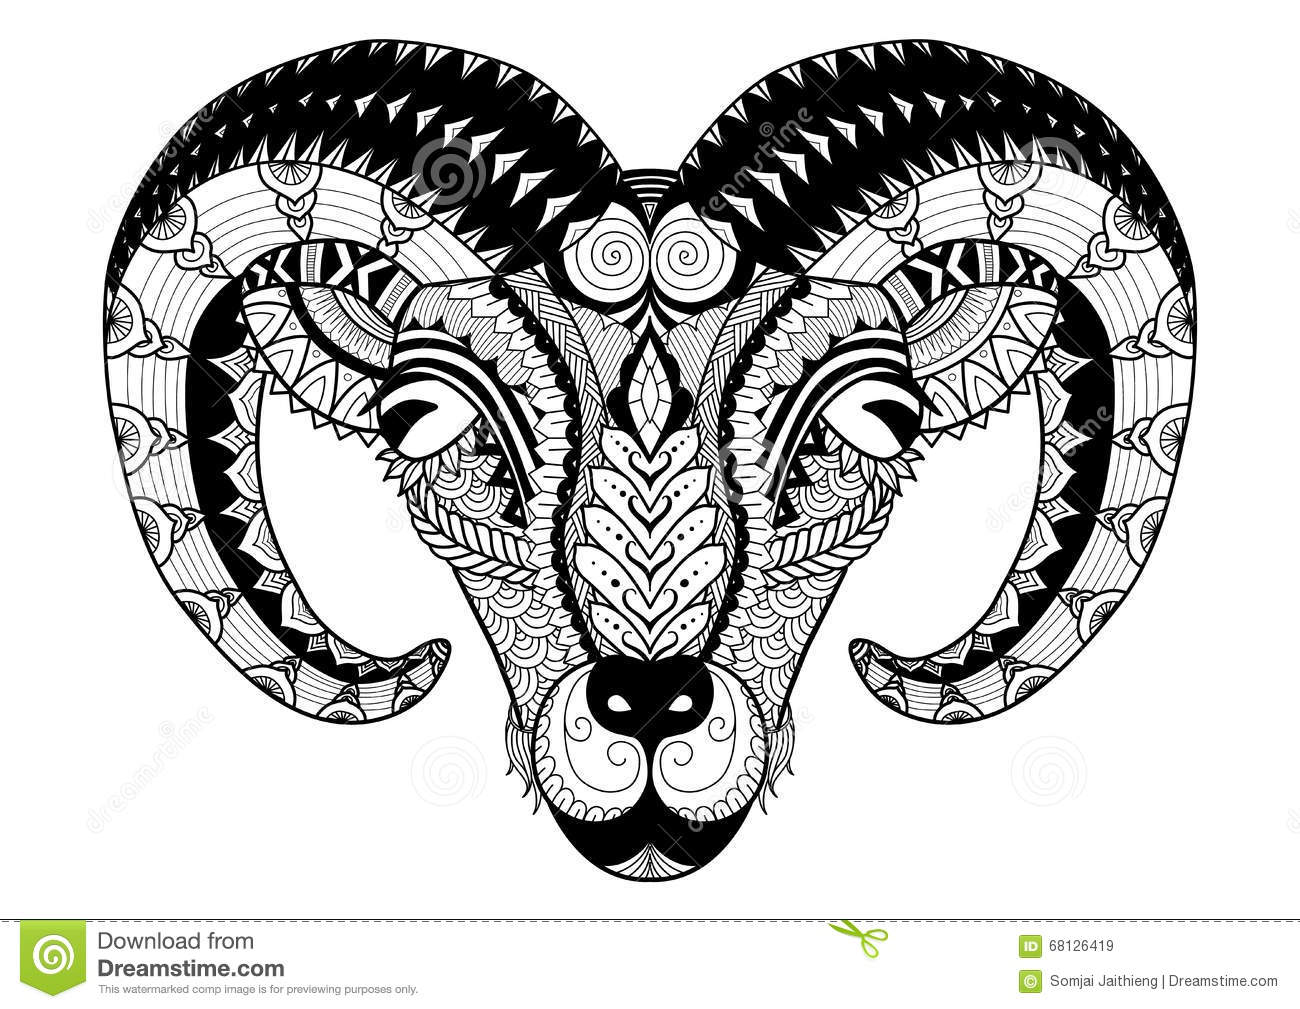 Horn Sheep Line Art Design For Coloring Book, T Shirt Design, Bag ...